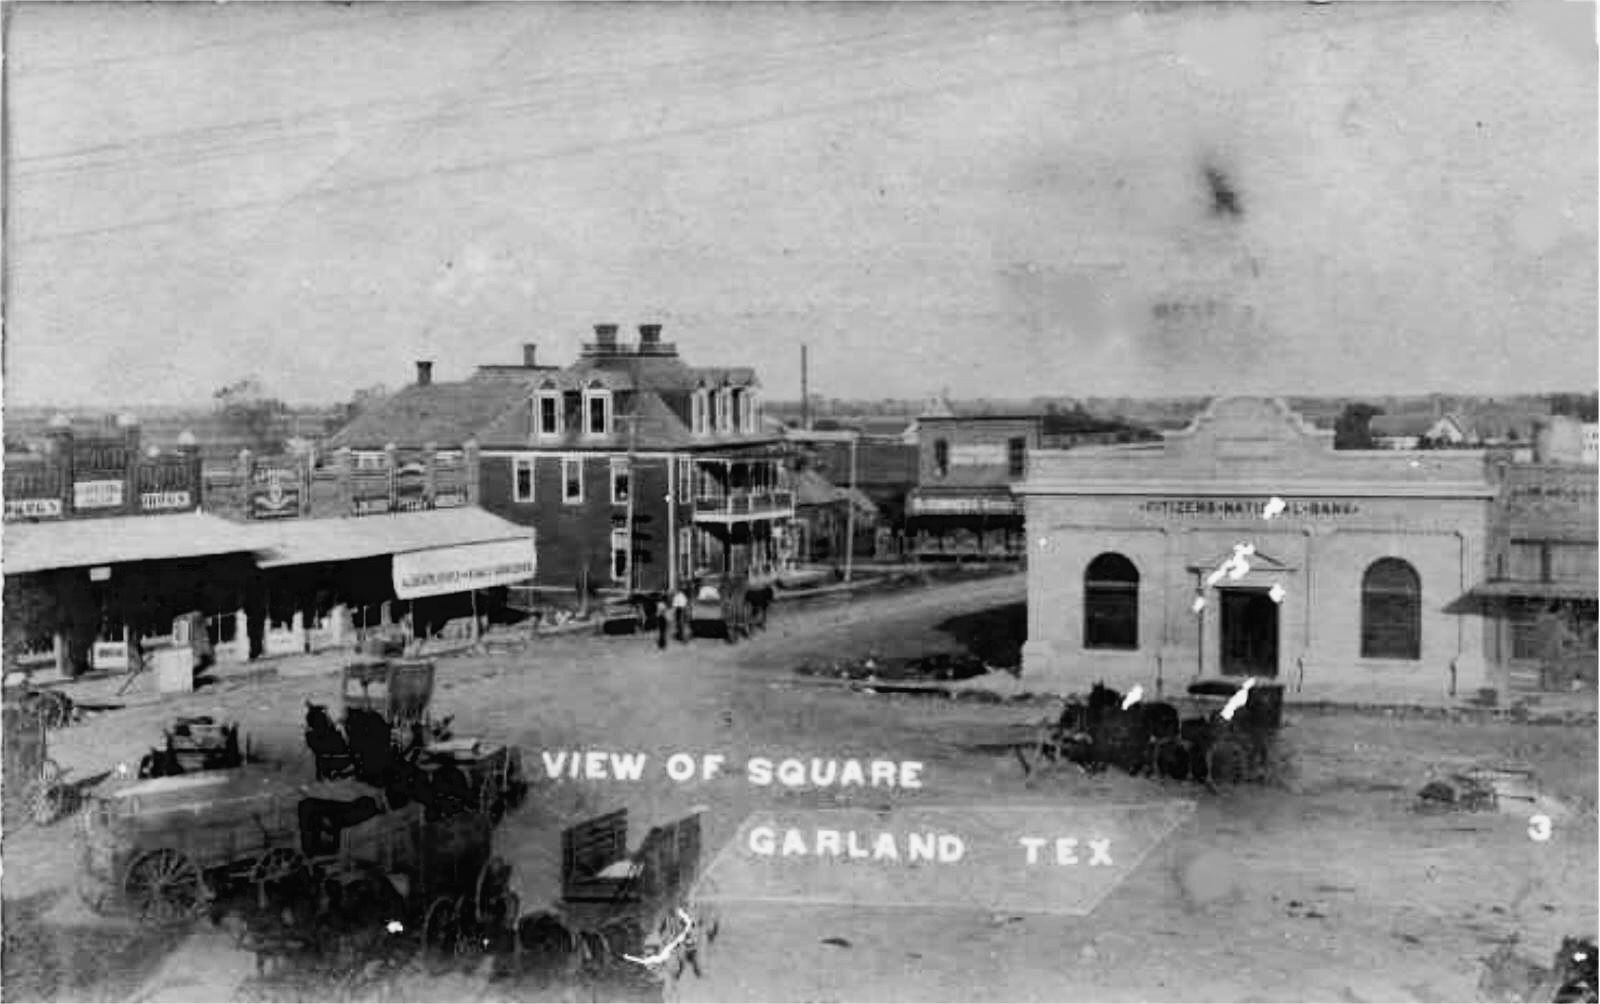 Garland Square Garland Texas 1907 The Light Building Has Citizens National Bank Sign On It Postcard Garland Texas Texas History Old Pictures